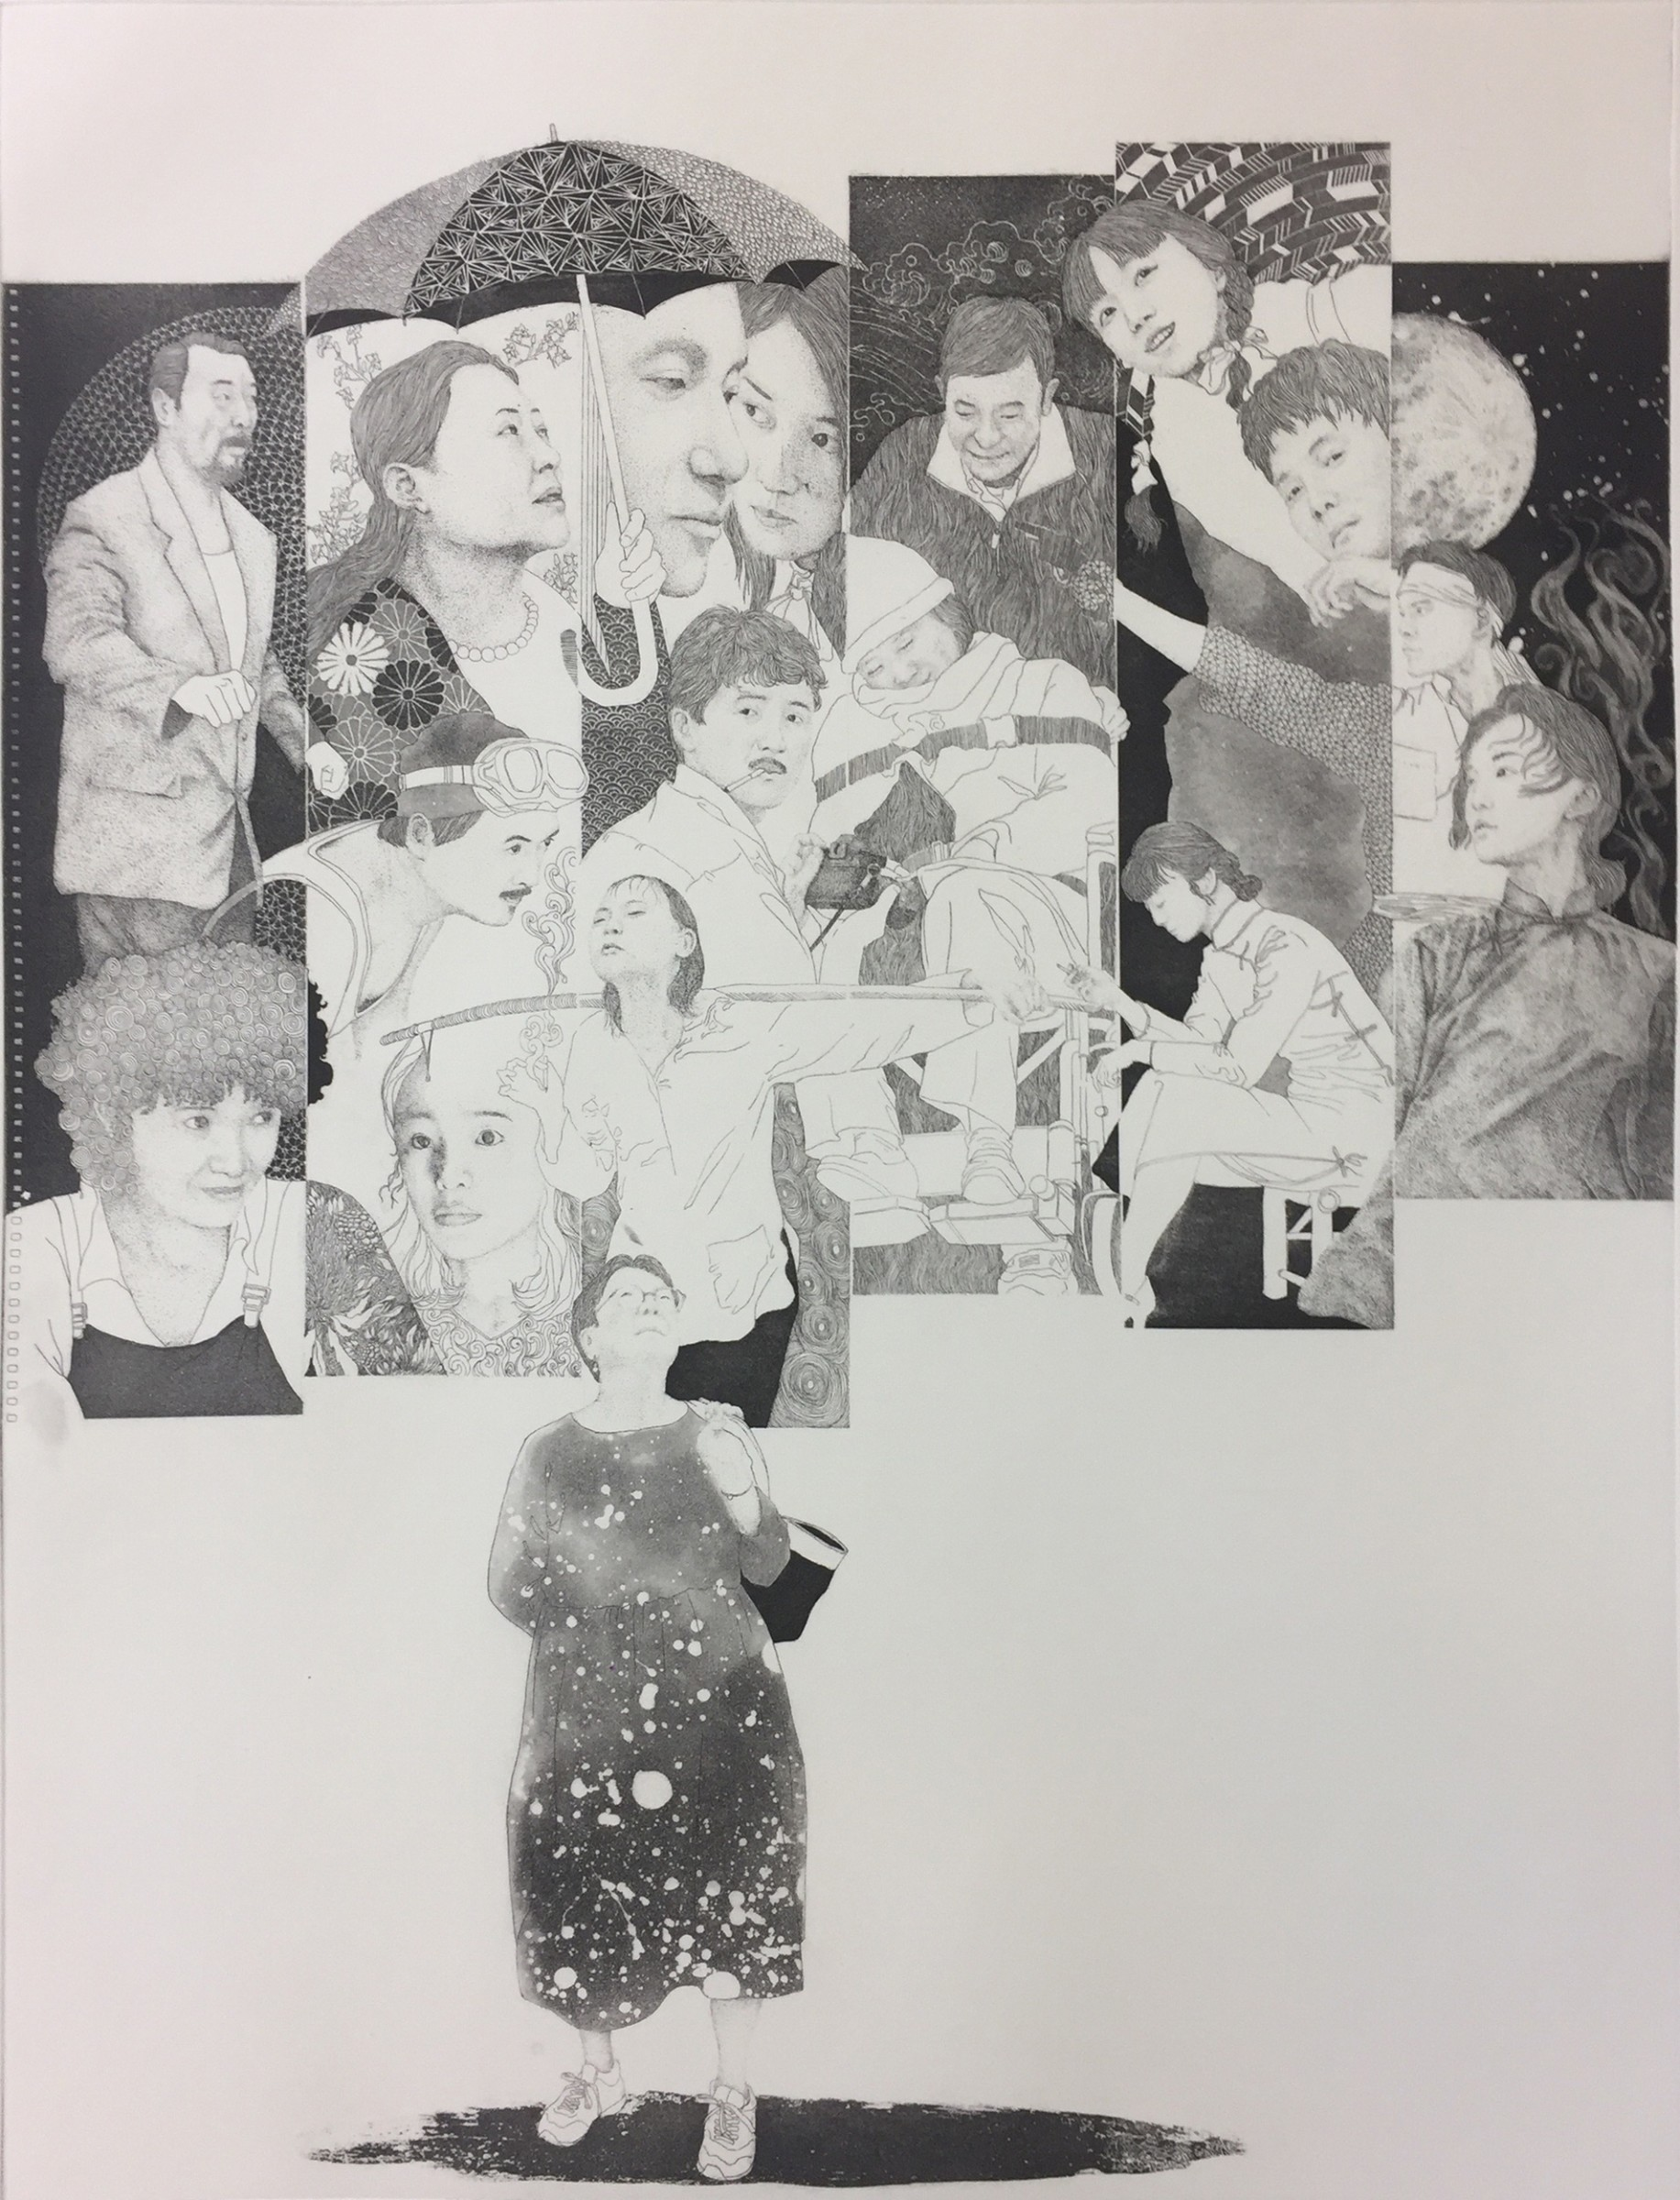 """<span class=""""link fancybox-details-link""""><a href=""""/exhibitions/17/works/image_standalone828/"""">View Detail Page</a></span><p><strong>Wai Wong</strong></p><p>Ong Ong</p><p>etching, ed of 15</p><p>60 x 80cm</p><p>£650 framed</p><p>£450 unframed</p>"""